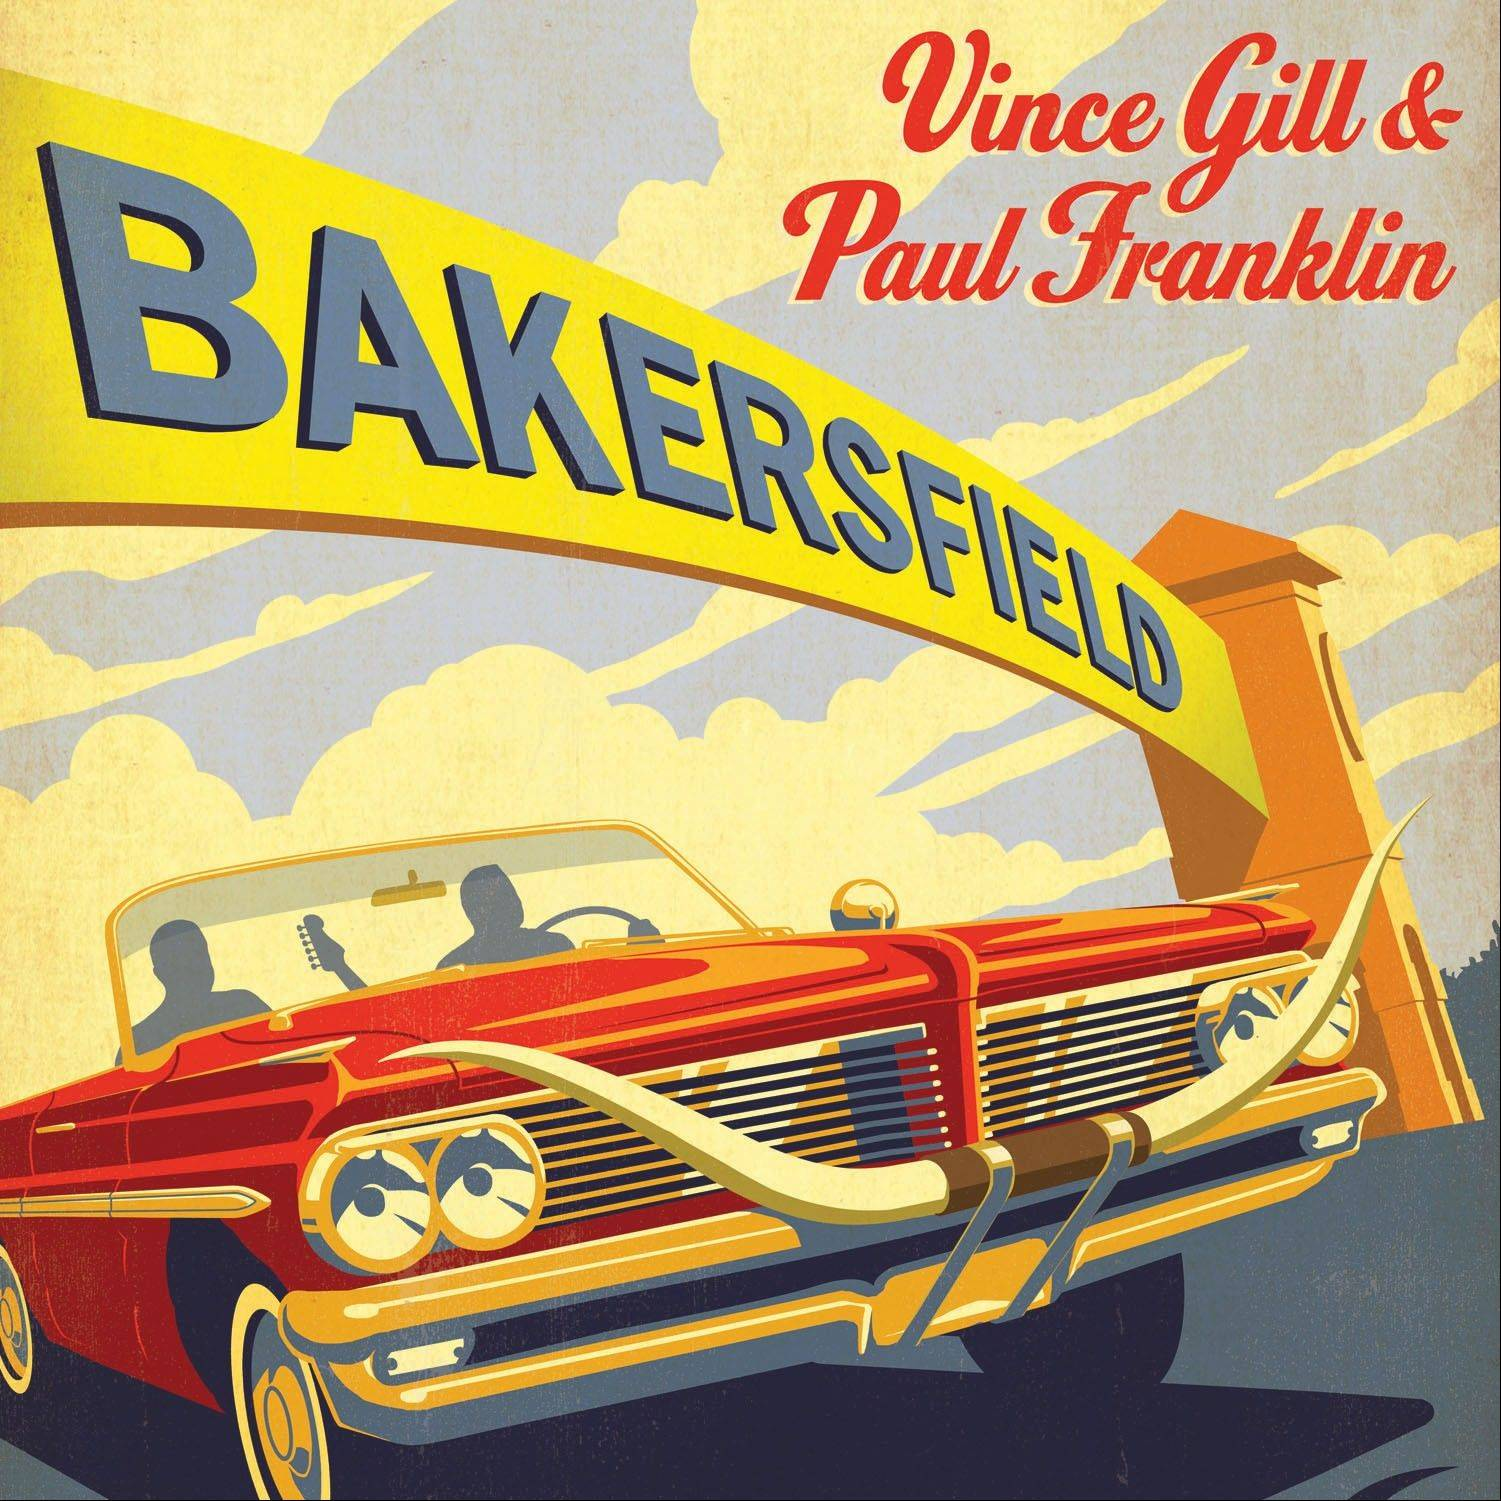 �Bakersfield� by Vince Gill & Paul Franklin